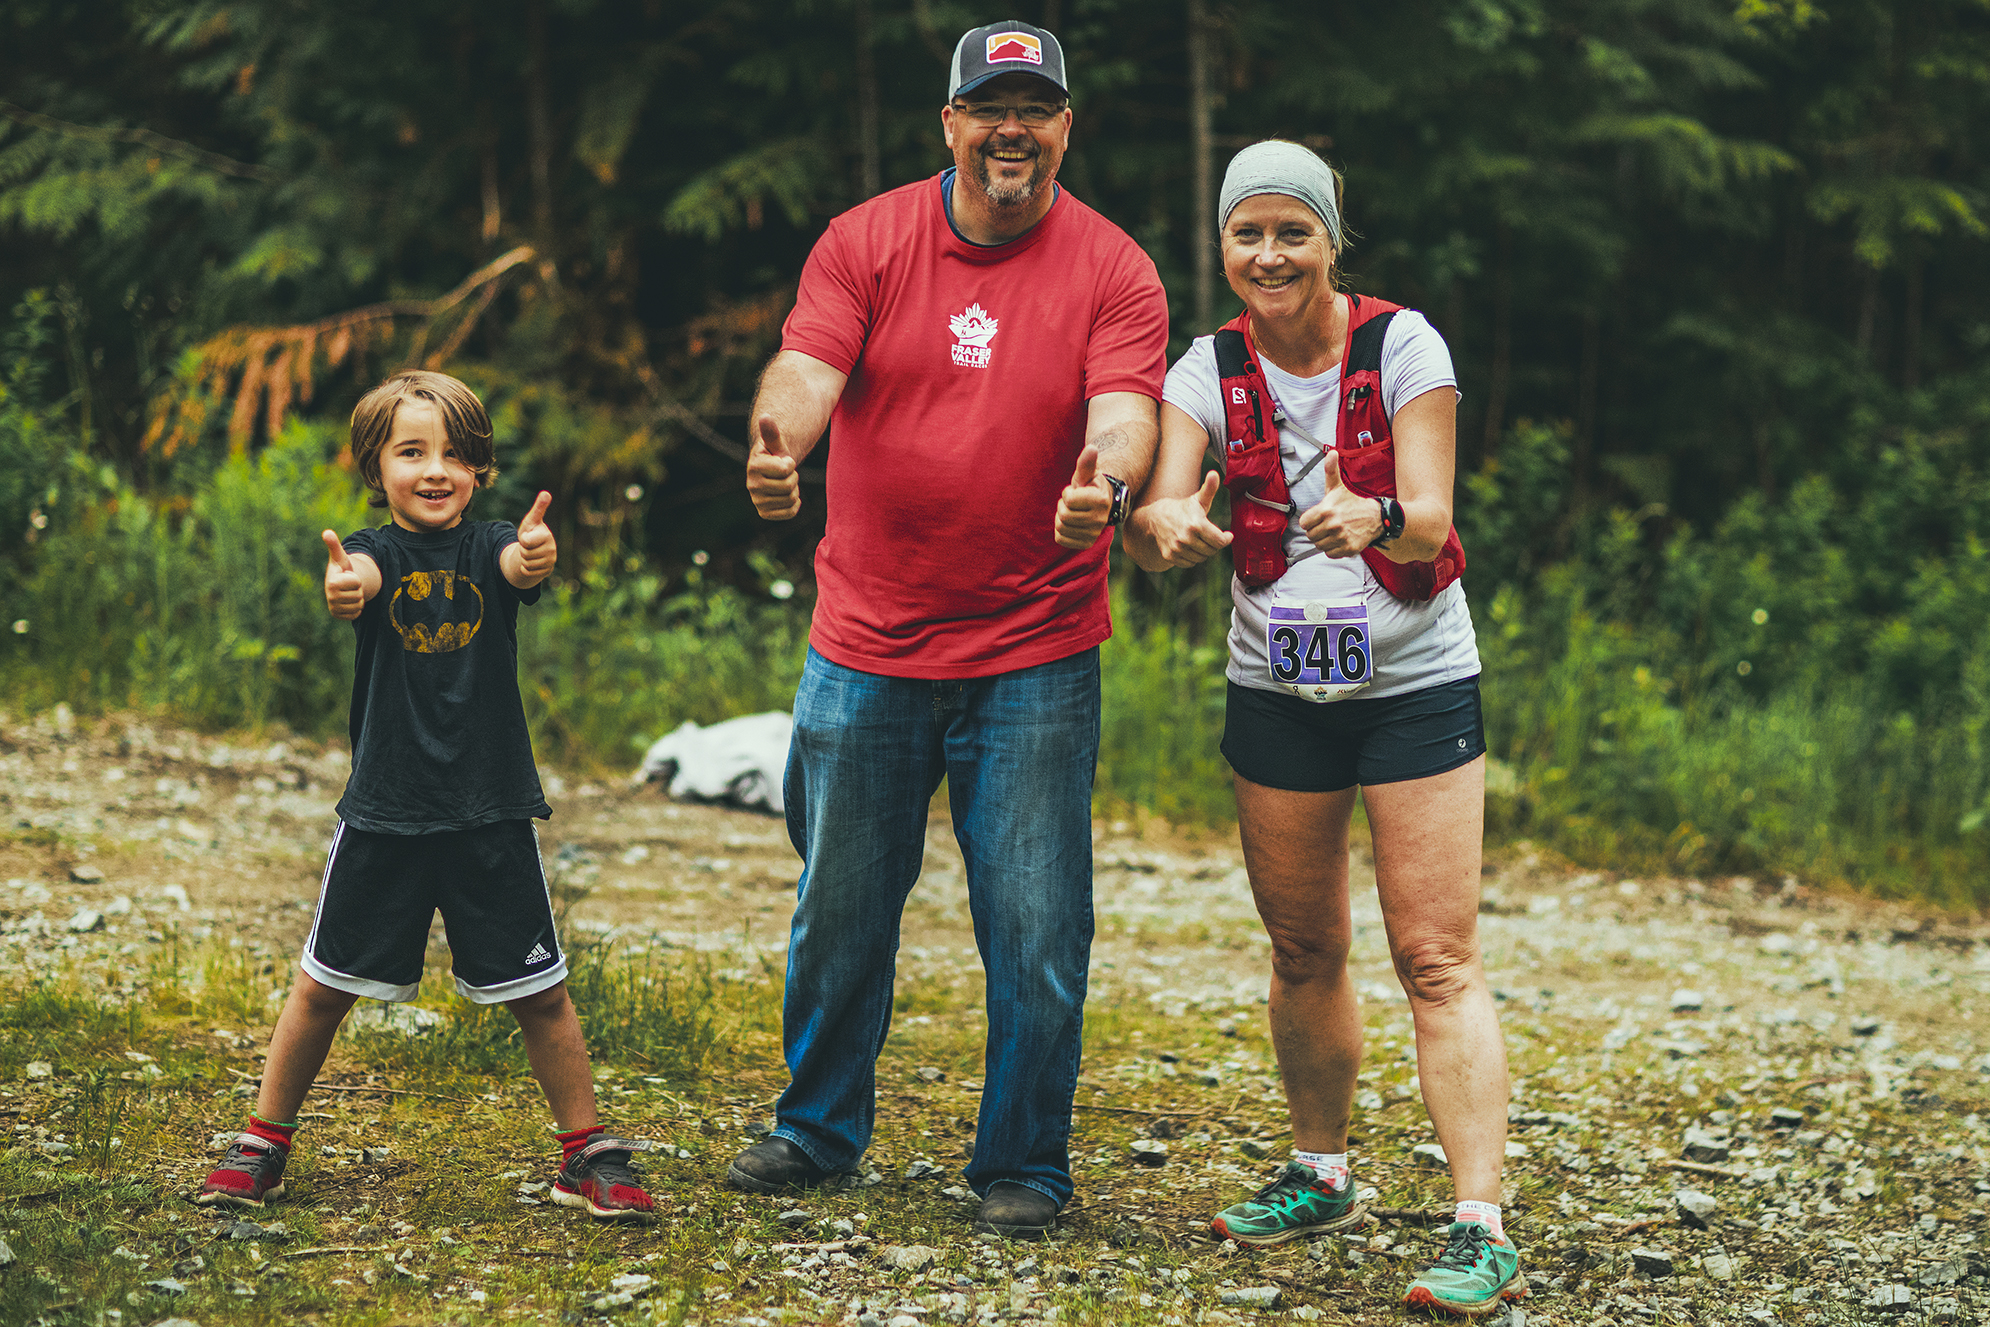 Fraser Valley Trail Races - Bear Mountain - IMG_1979 by Brice Ferre Studio - Vancouver Portrait Adventure and Athlete Photographer.jpg